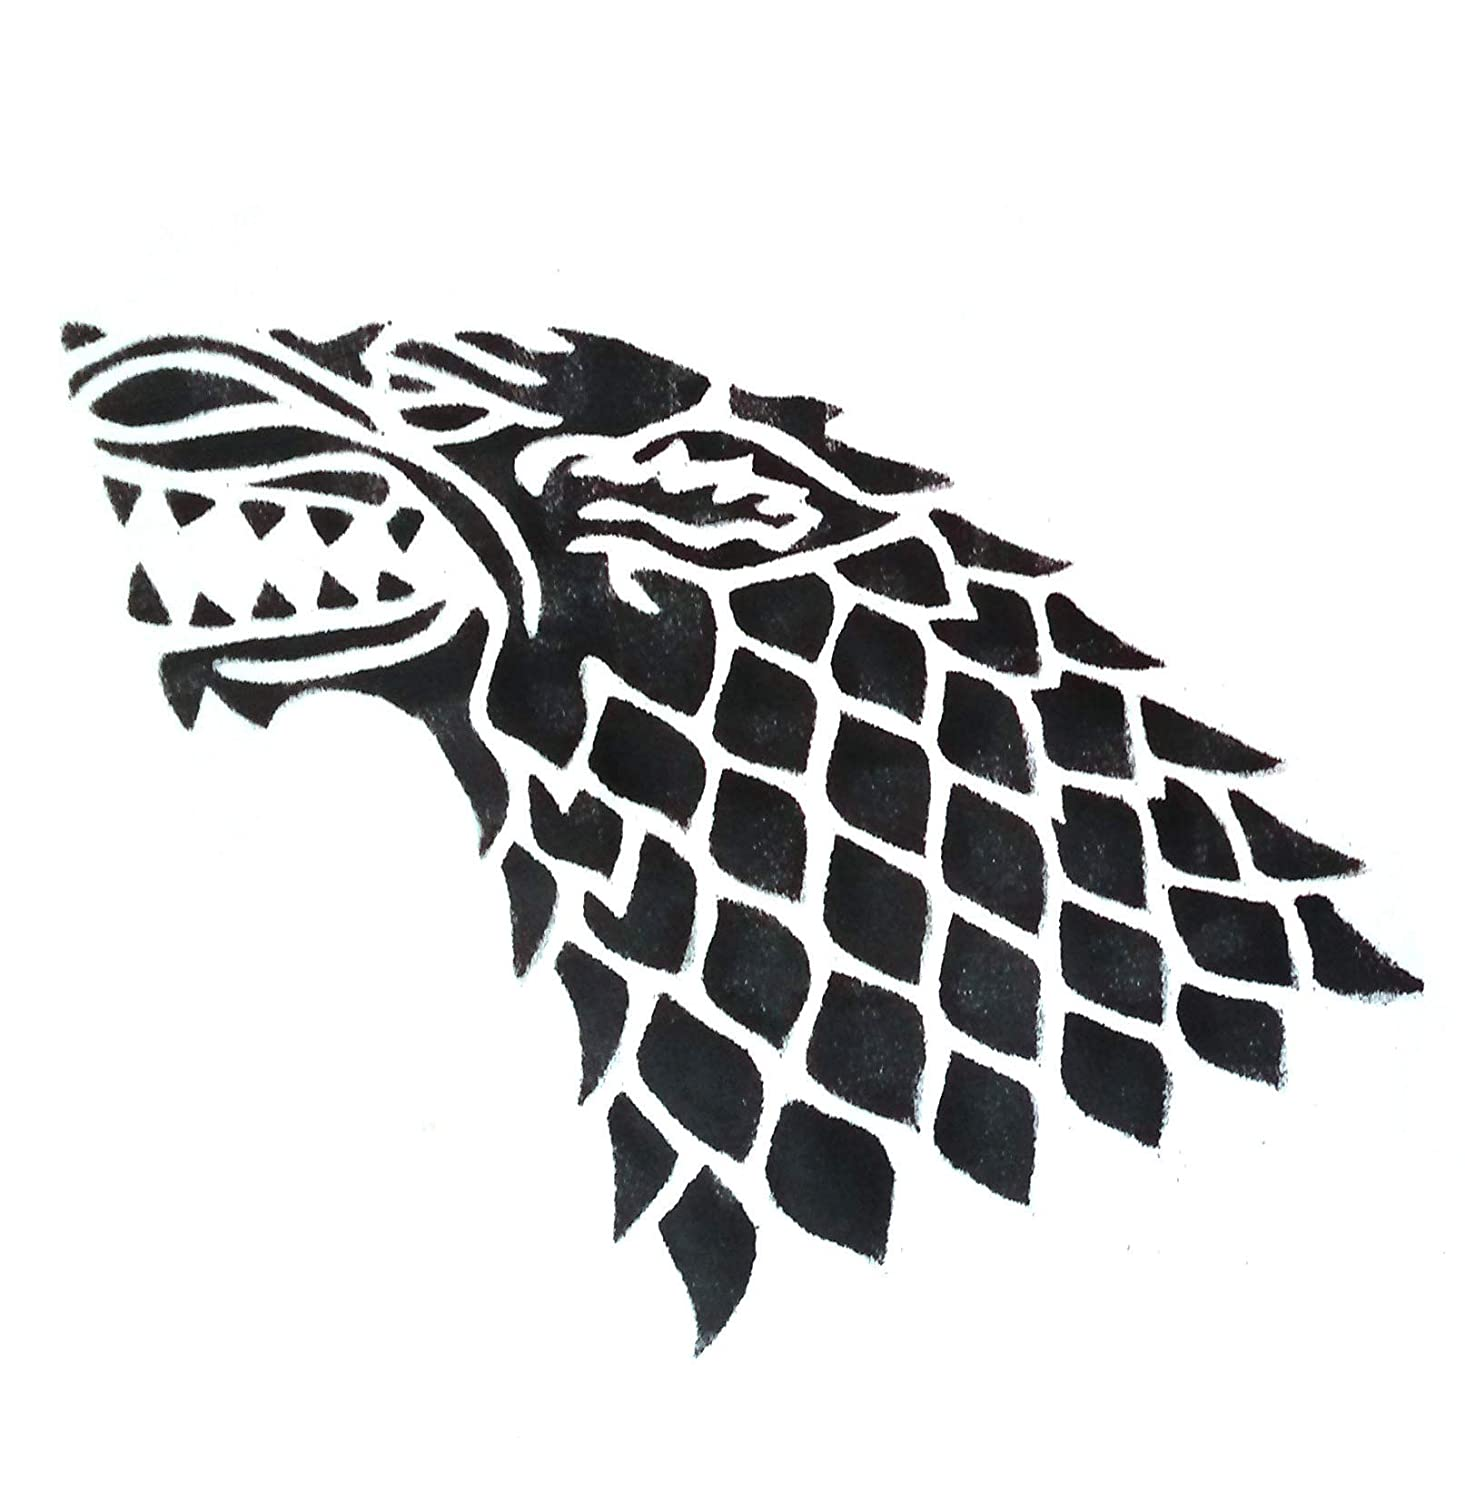 image relating to Game of Thrones Stencil Printable referred to as : Match of Thrones Influenced Homemade Stencil. Stark